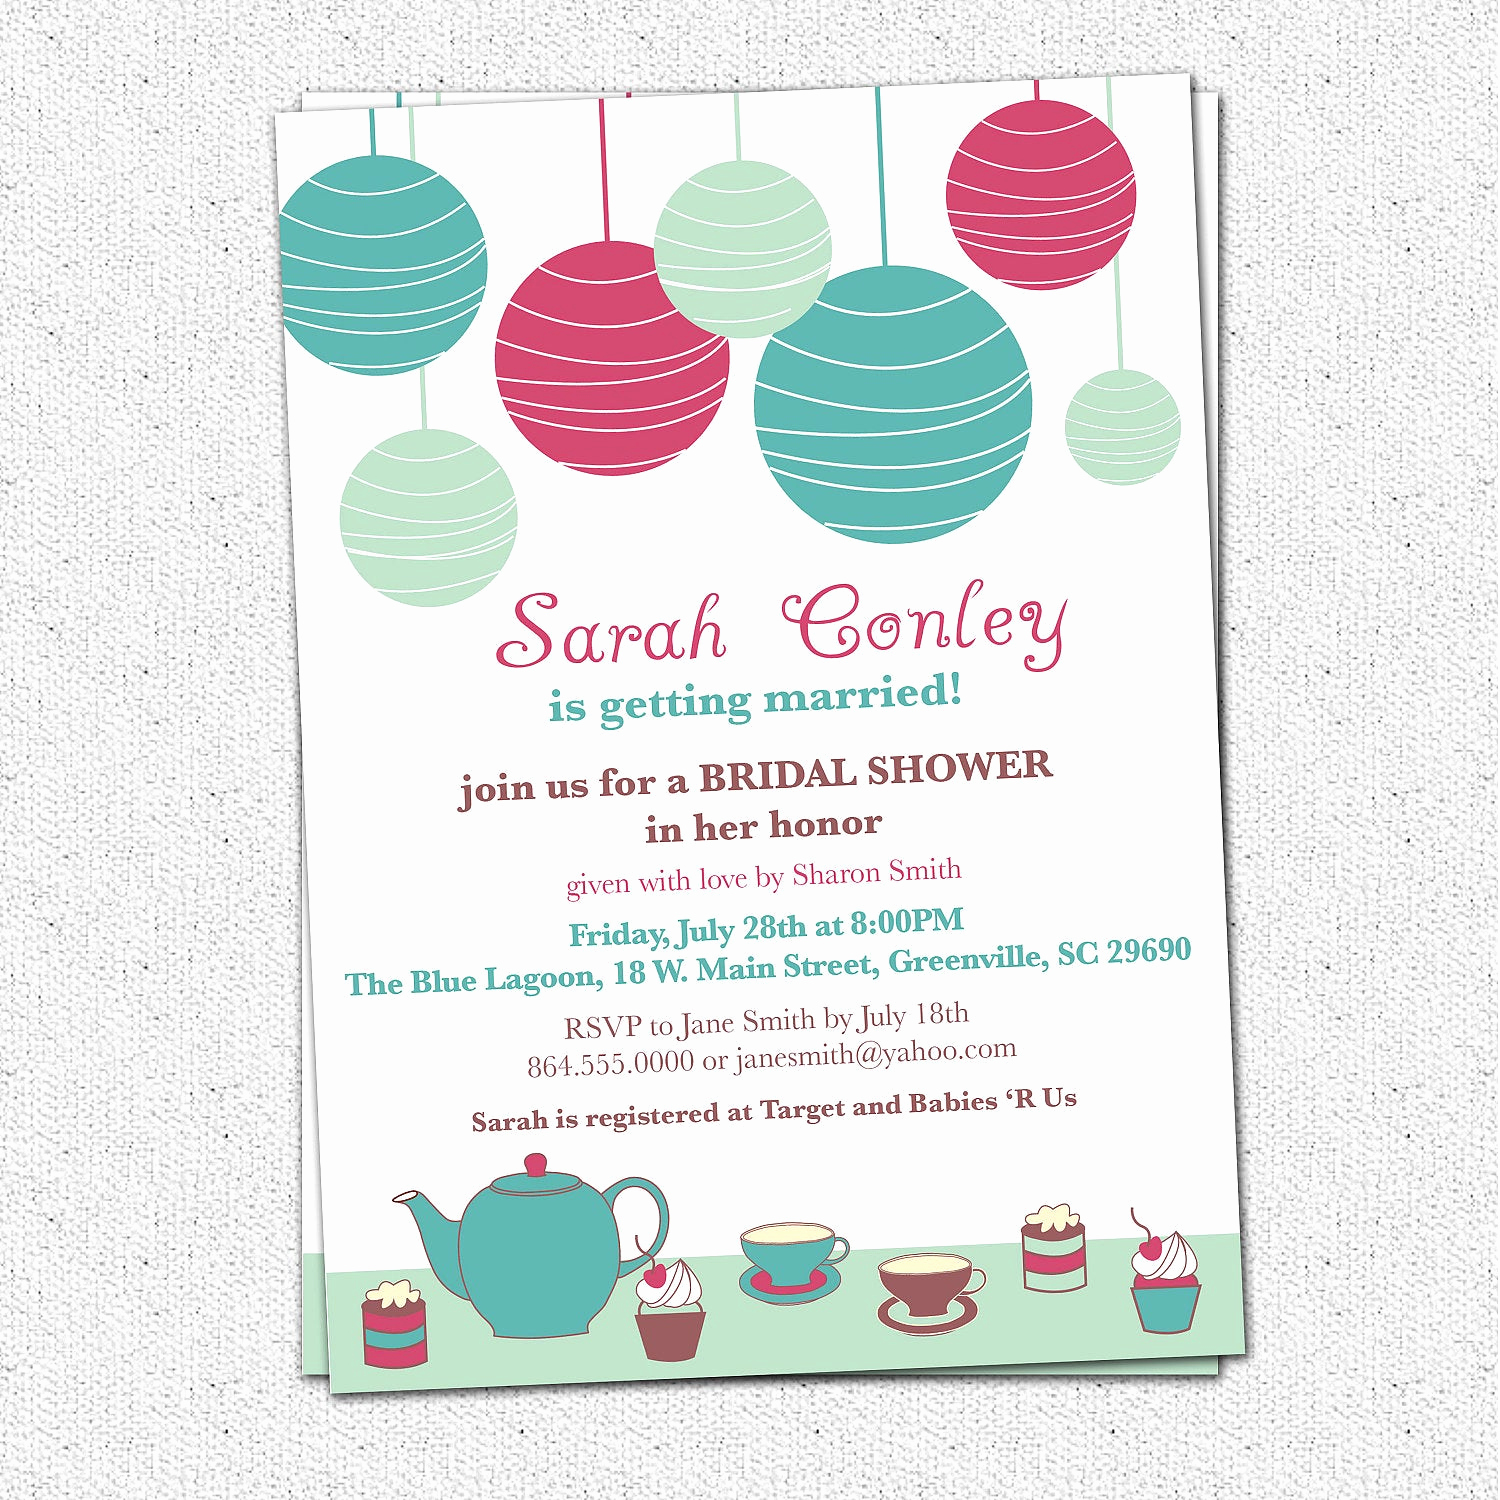 Bridal Shower Brunch Invitation Wording Inspirational Bridal Shower Invitation Printable Tea Brunch Lanterns